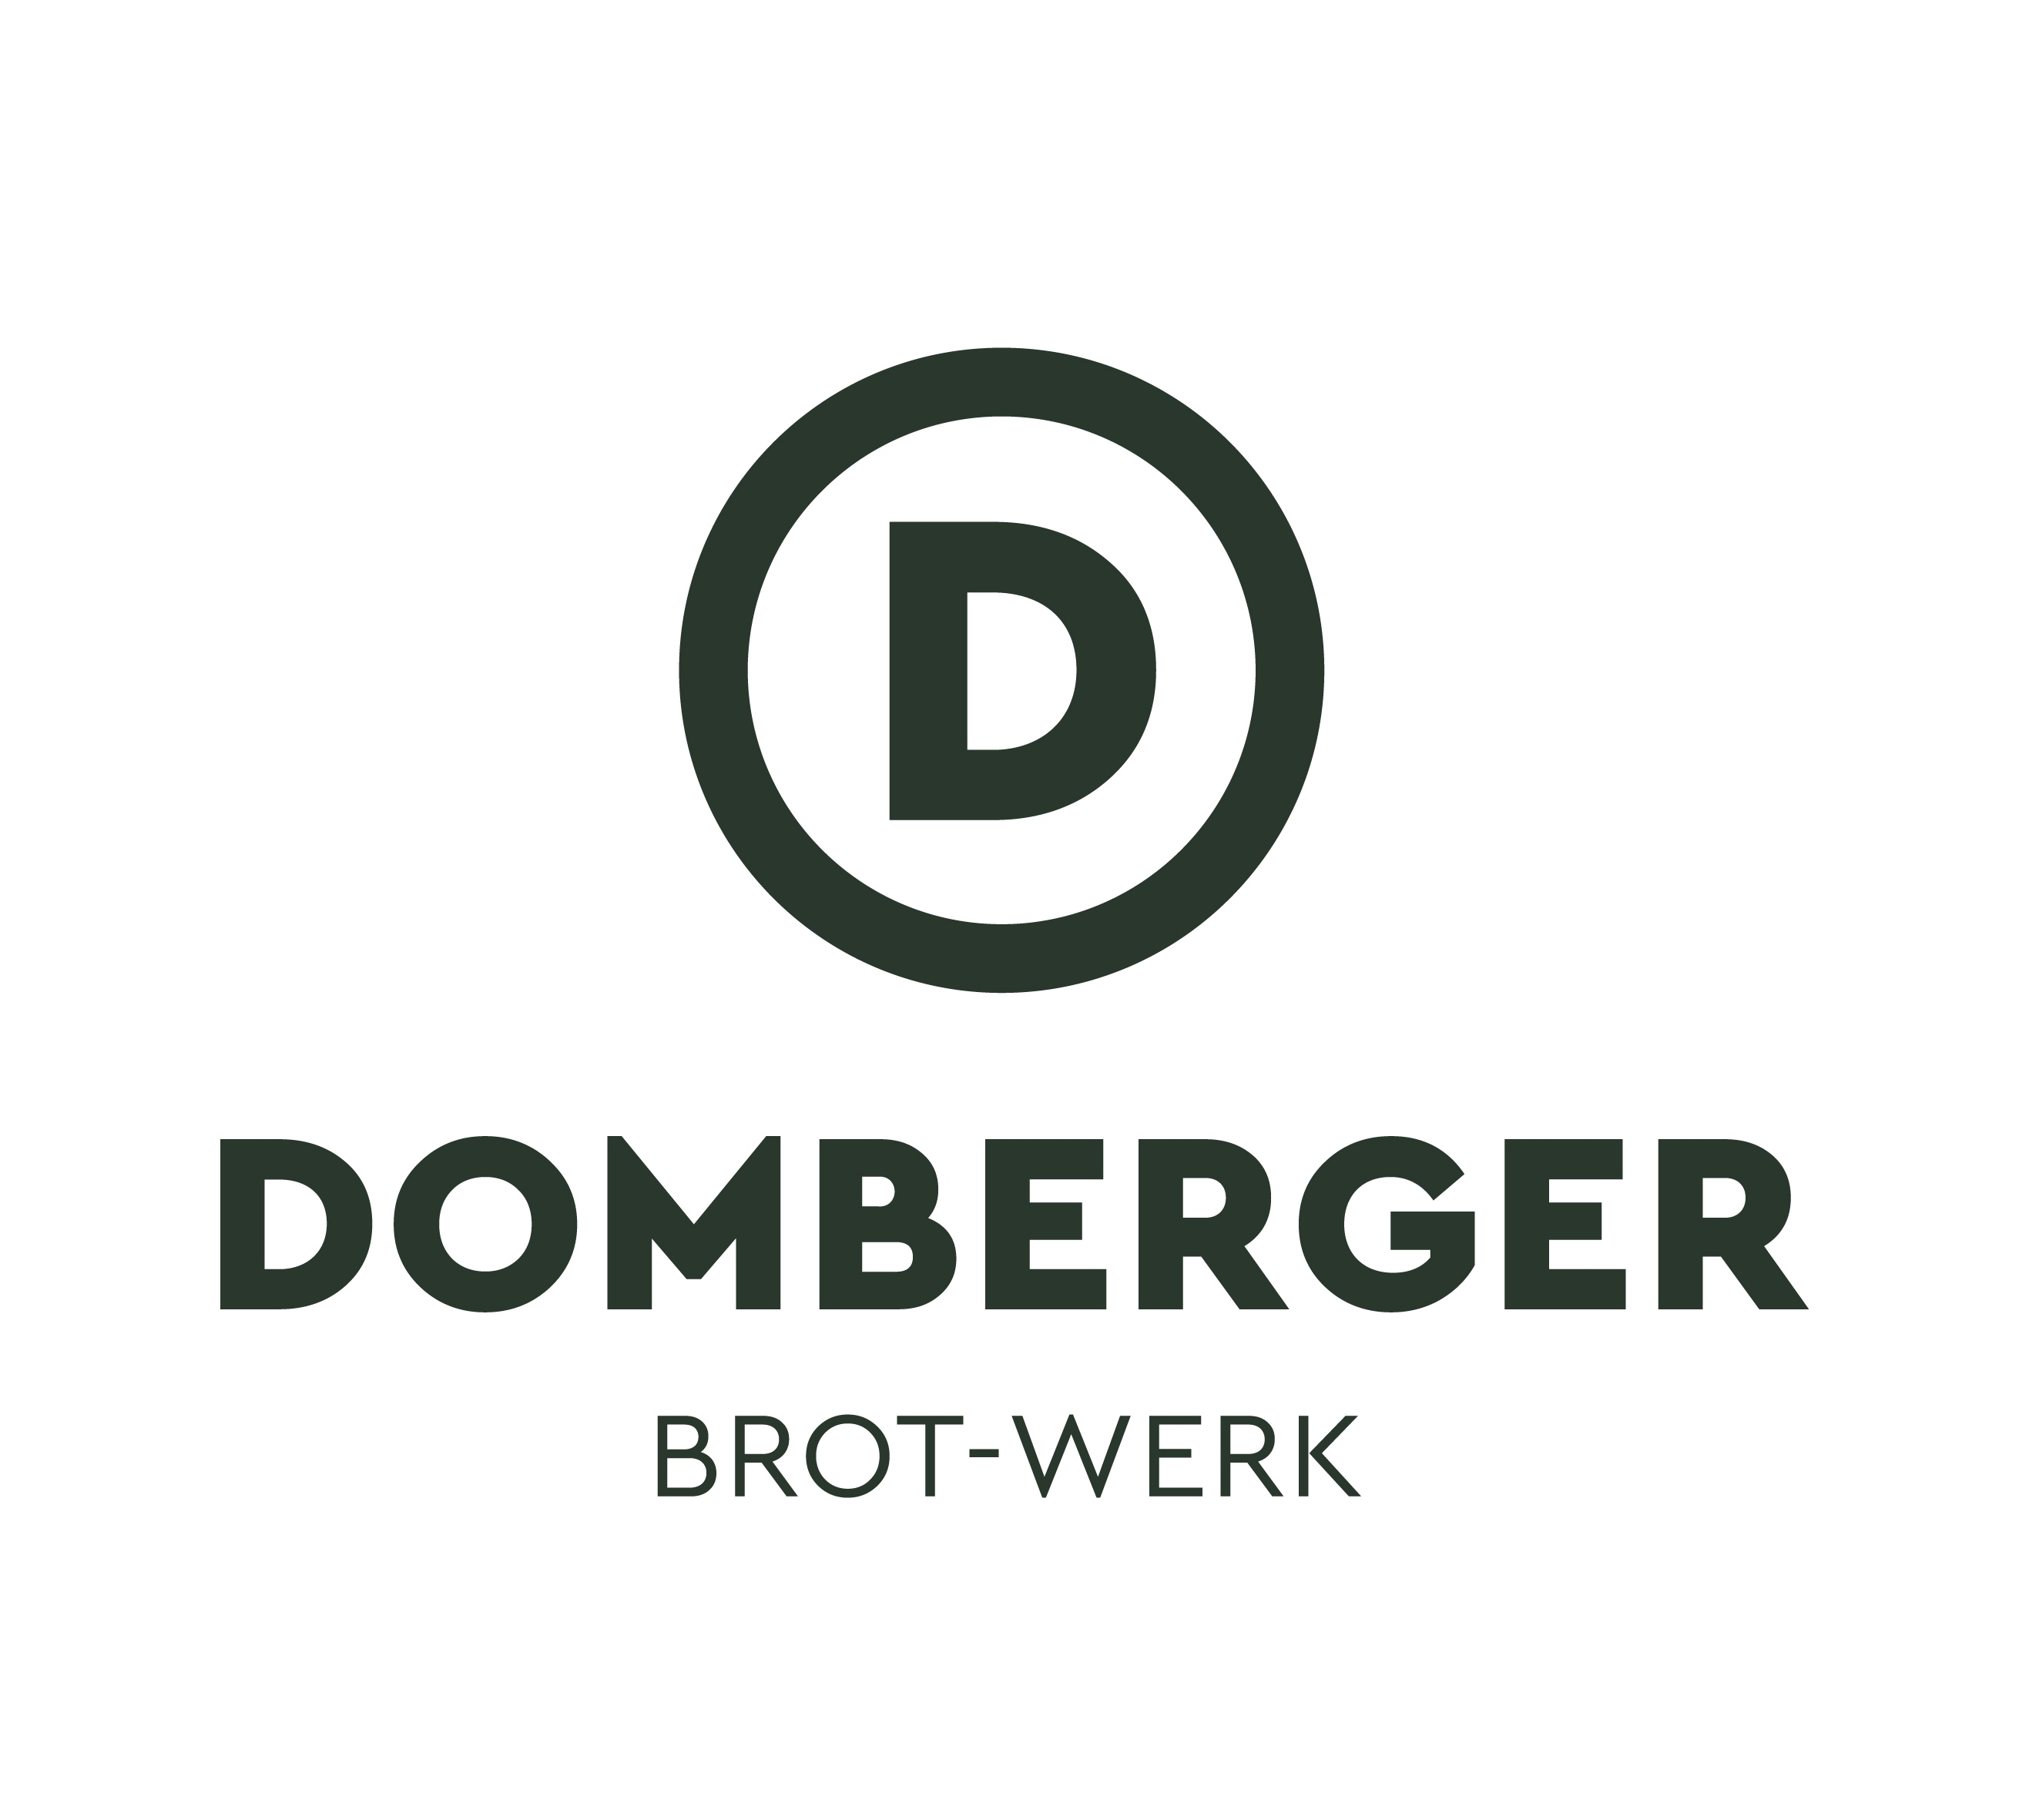 DOMBERGER